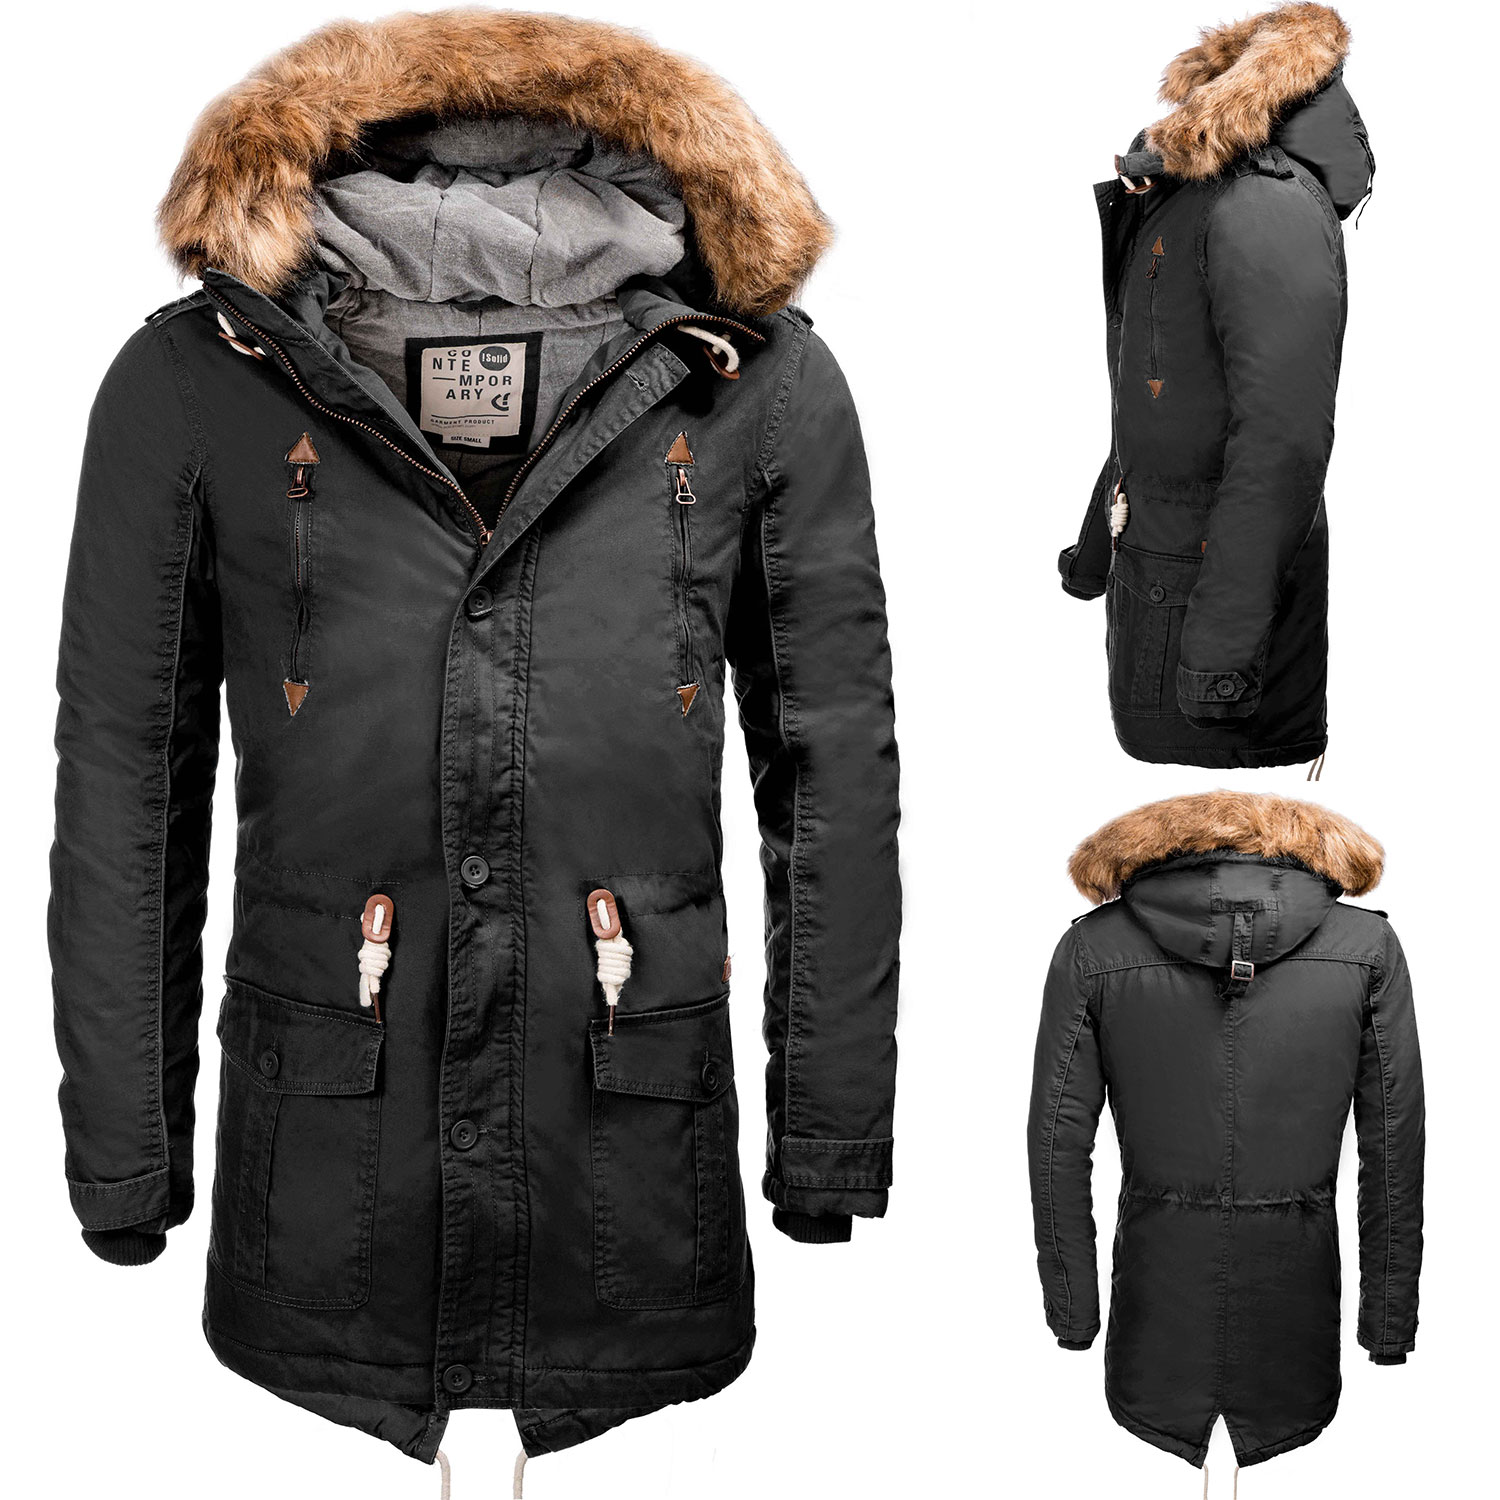 solid herren winter parka kapuze winter jacke kunstfell. Black Bedroom Furniture Sets. Home Design Ideas